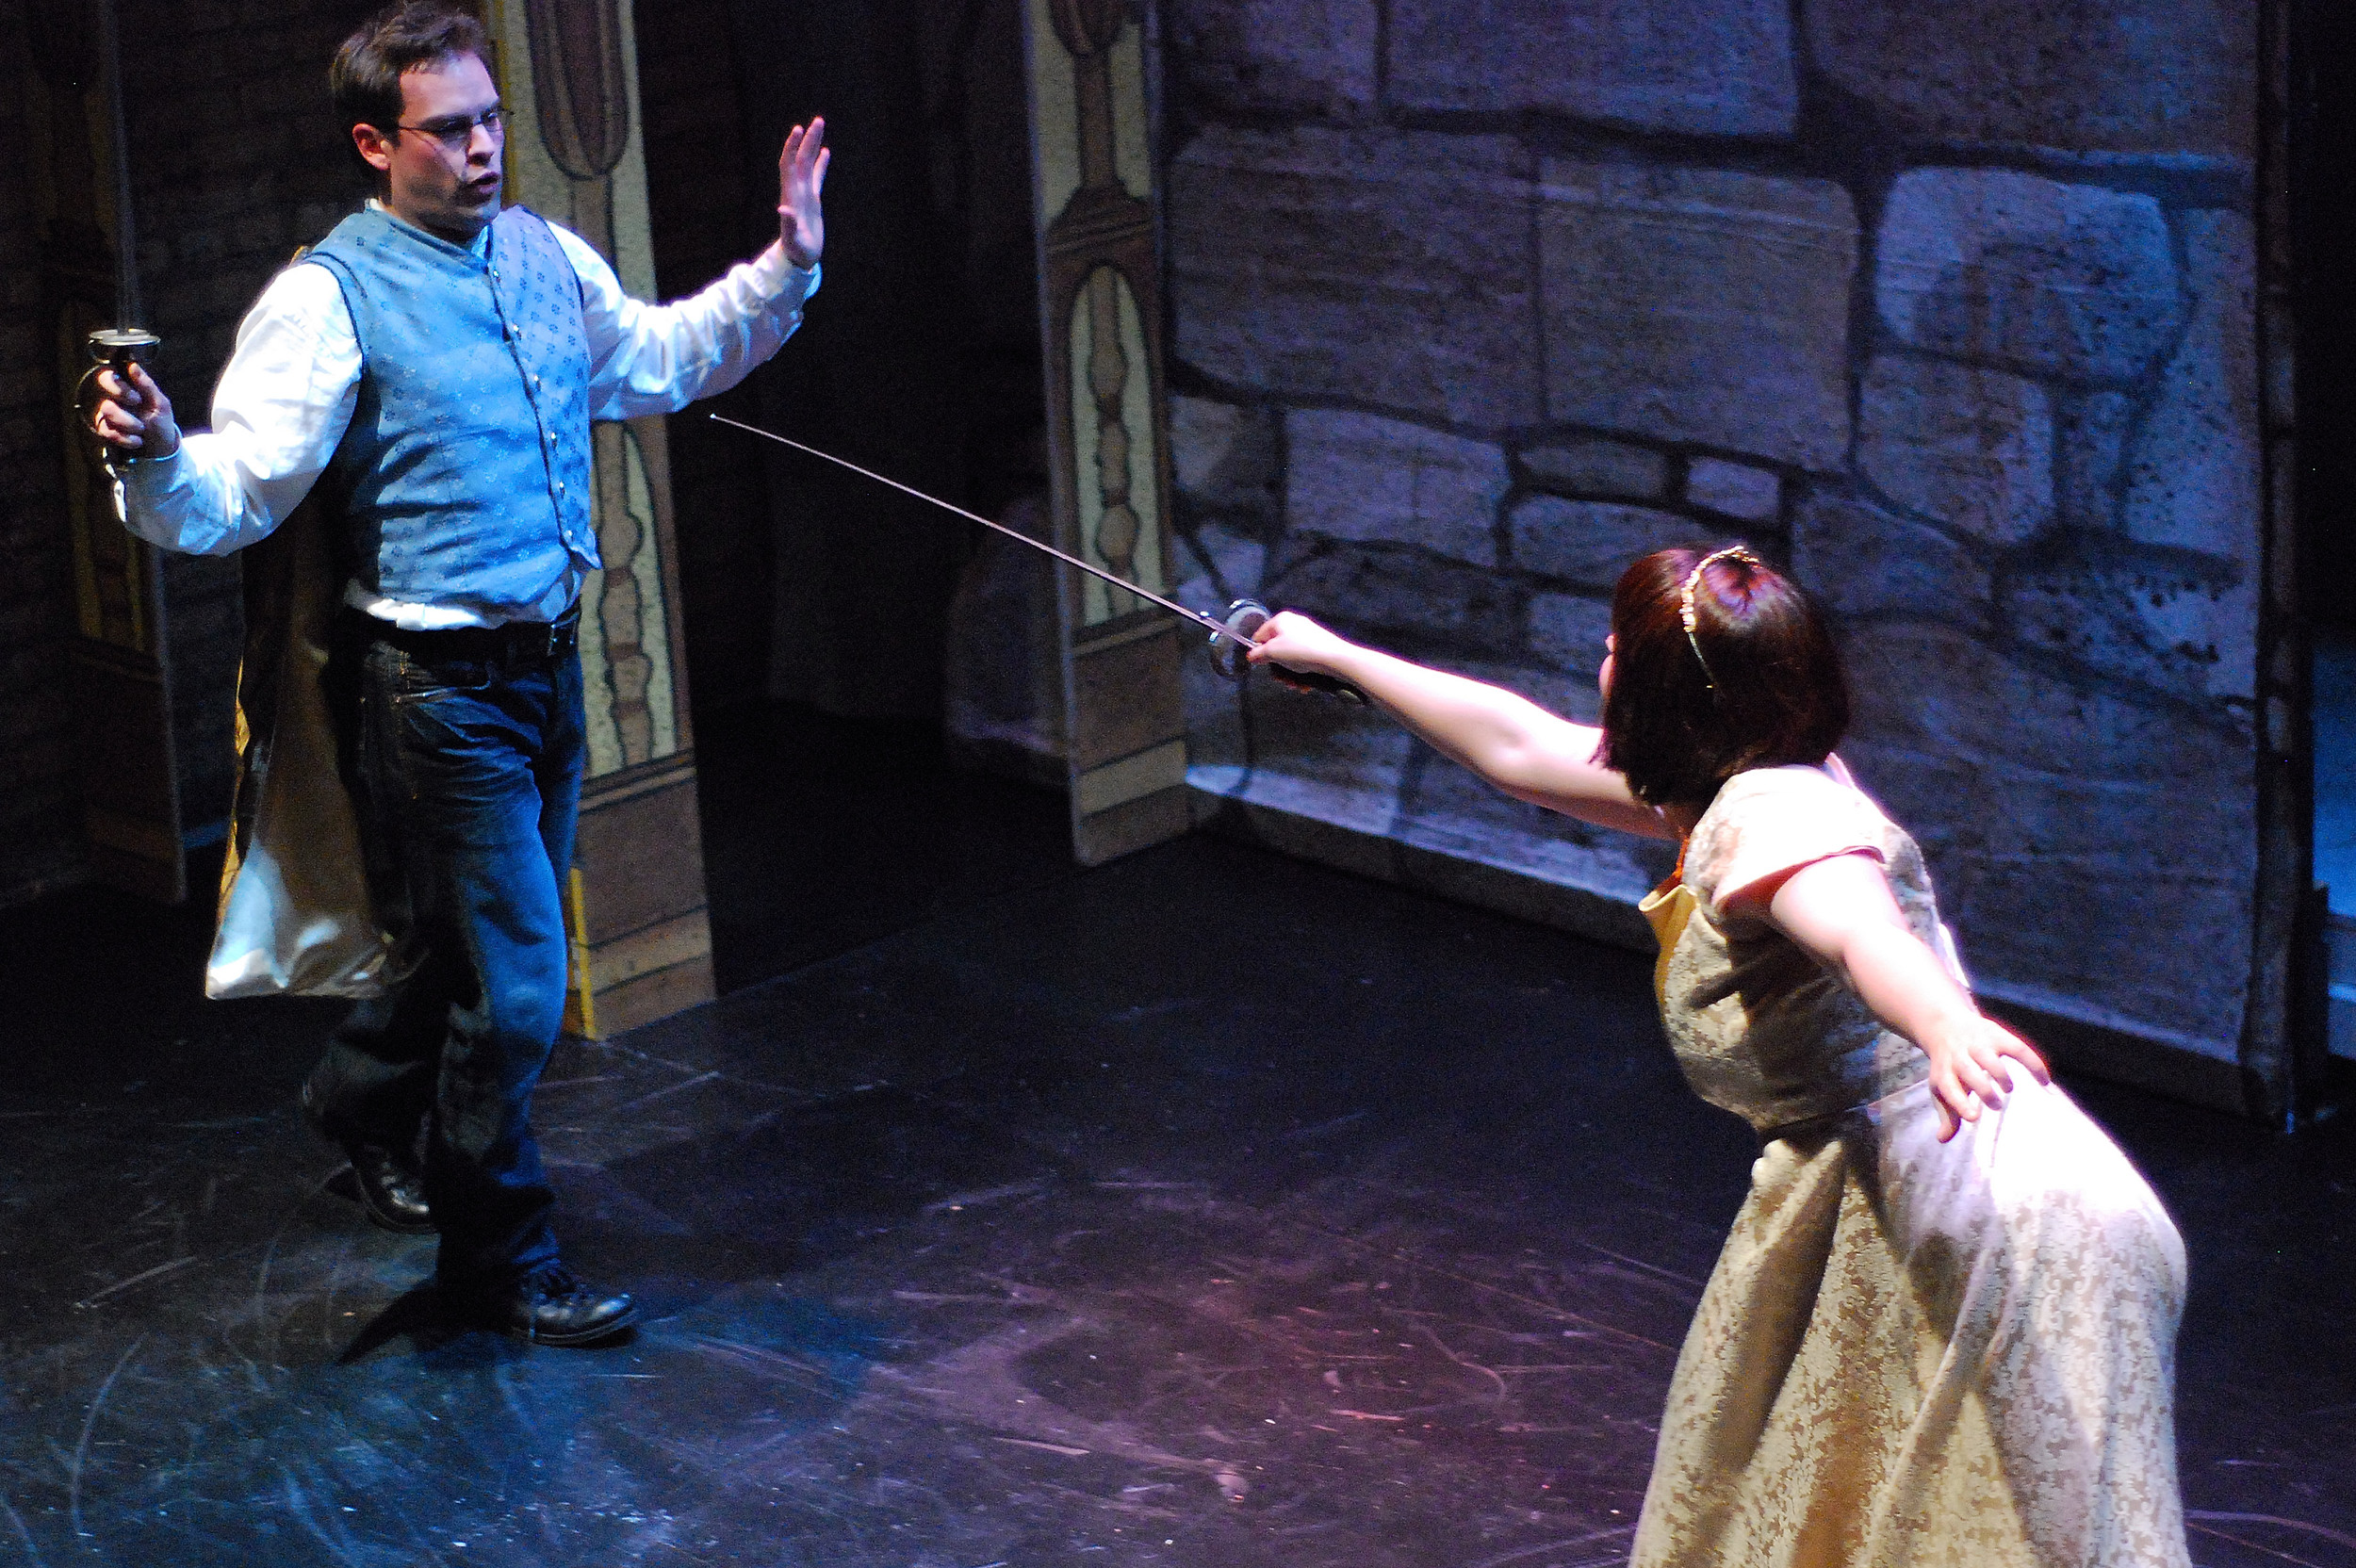 THE LAST OF THE DRAGONS, Lifeline Theatre, directed by Dorothy Milne